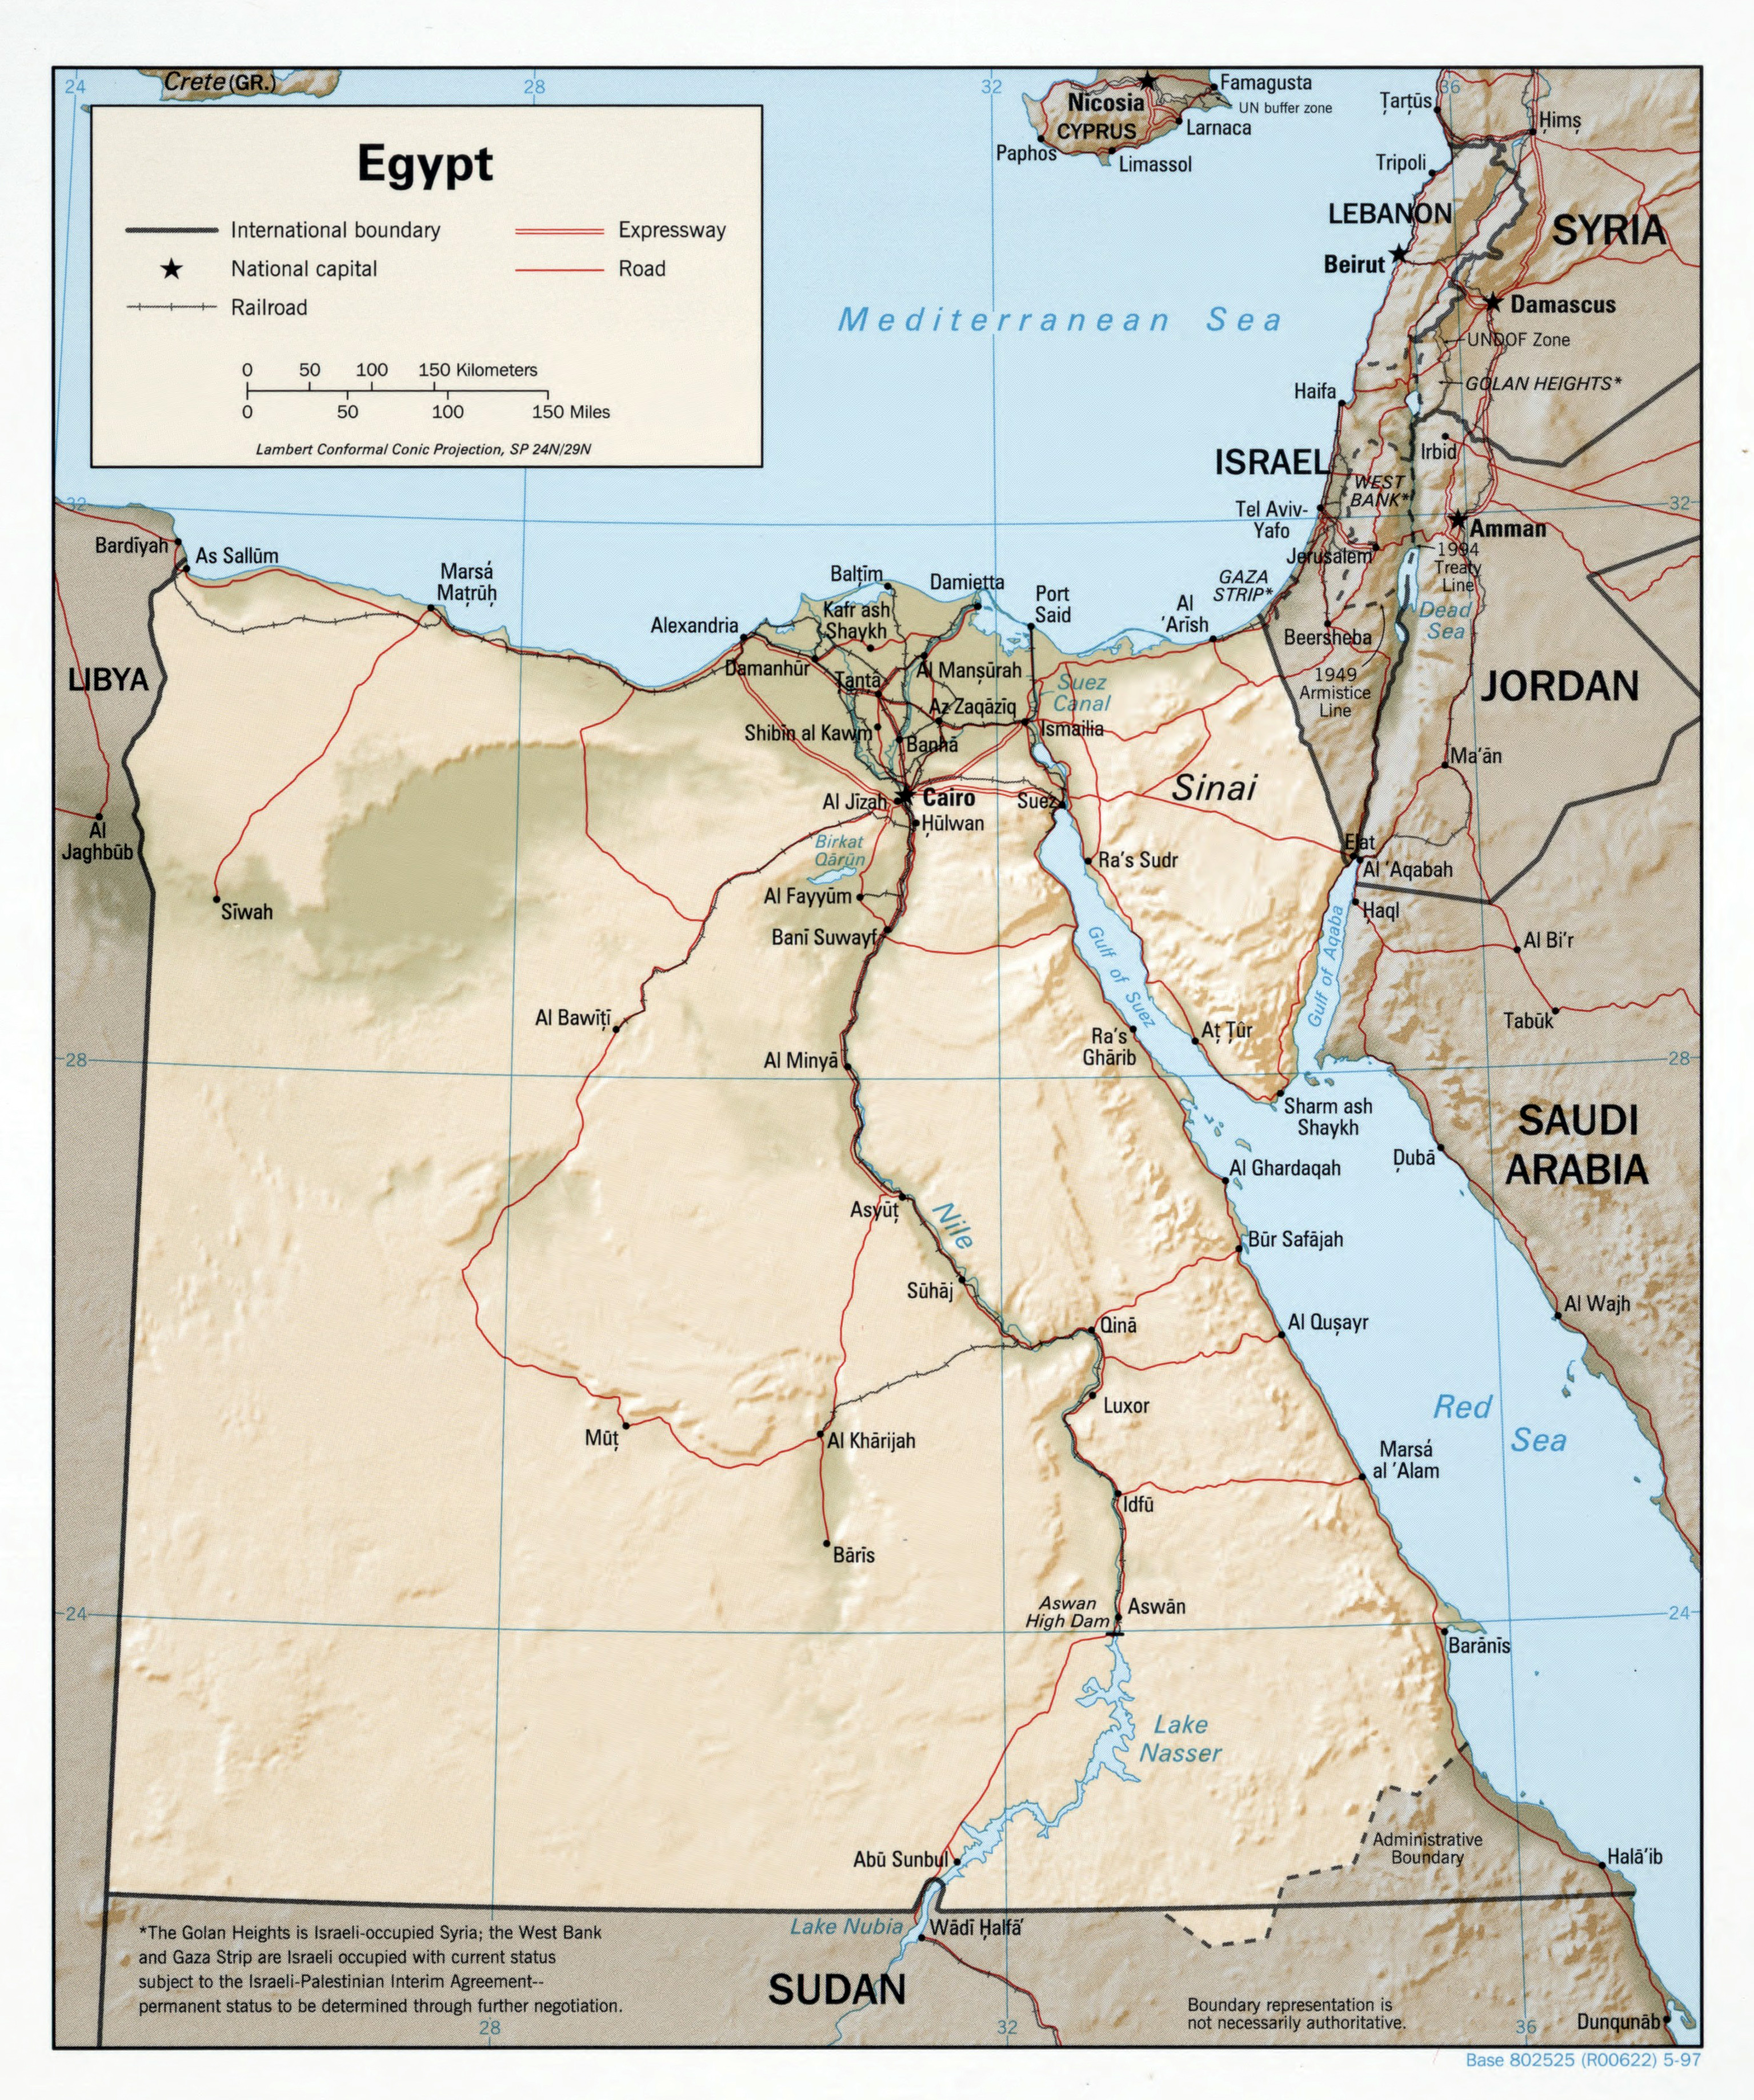 Large Scale Political Map Of Egypt With Relief Roads Railroads - Map of egypt with major cities